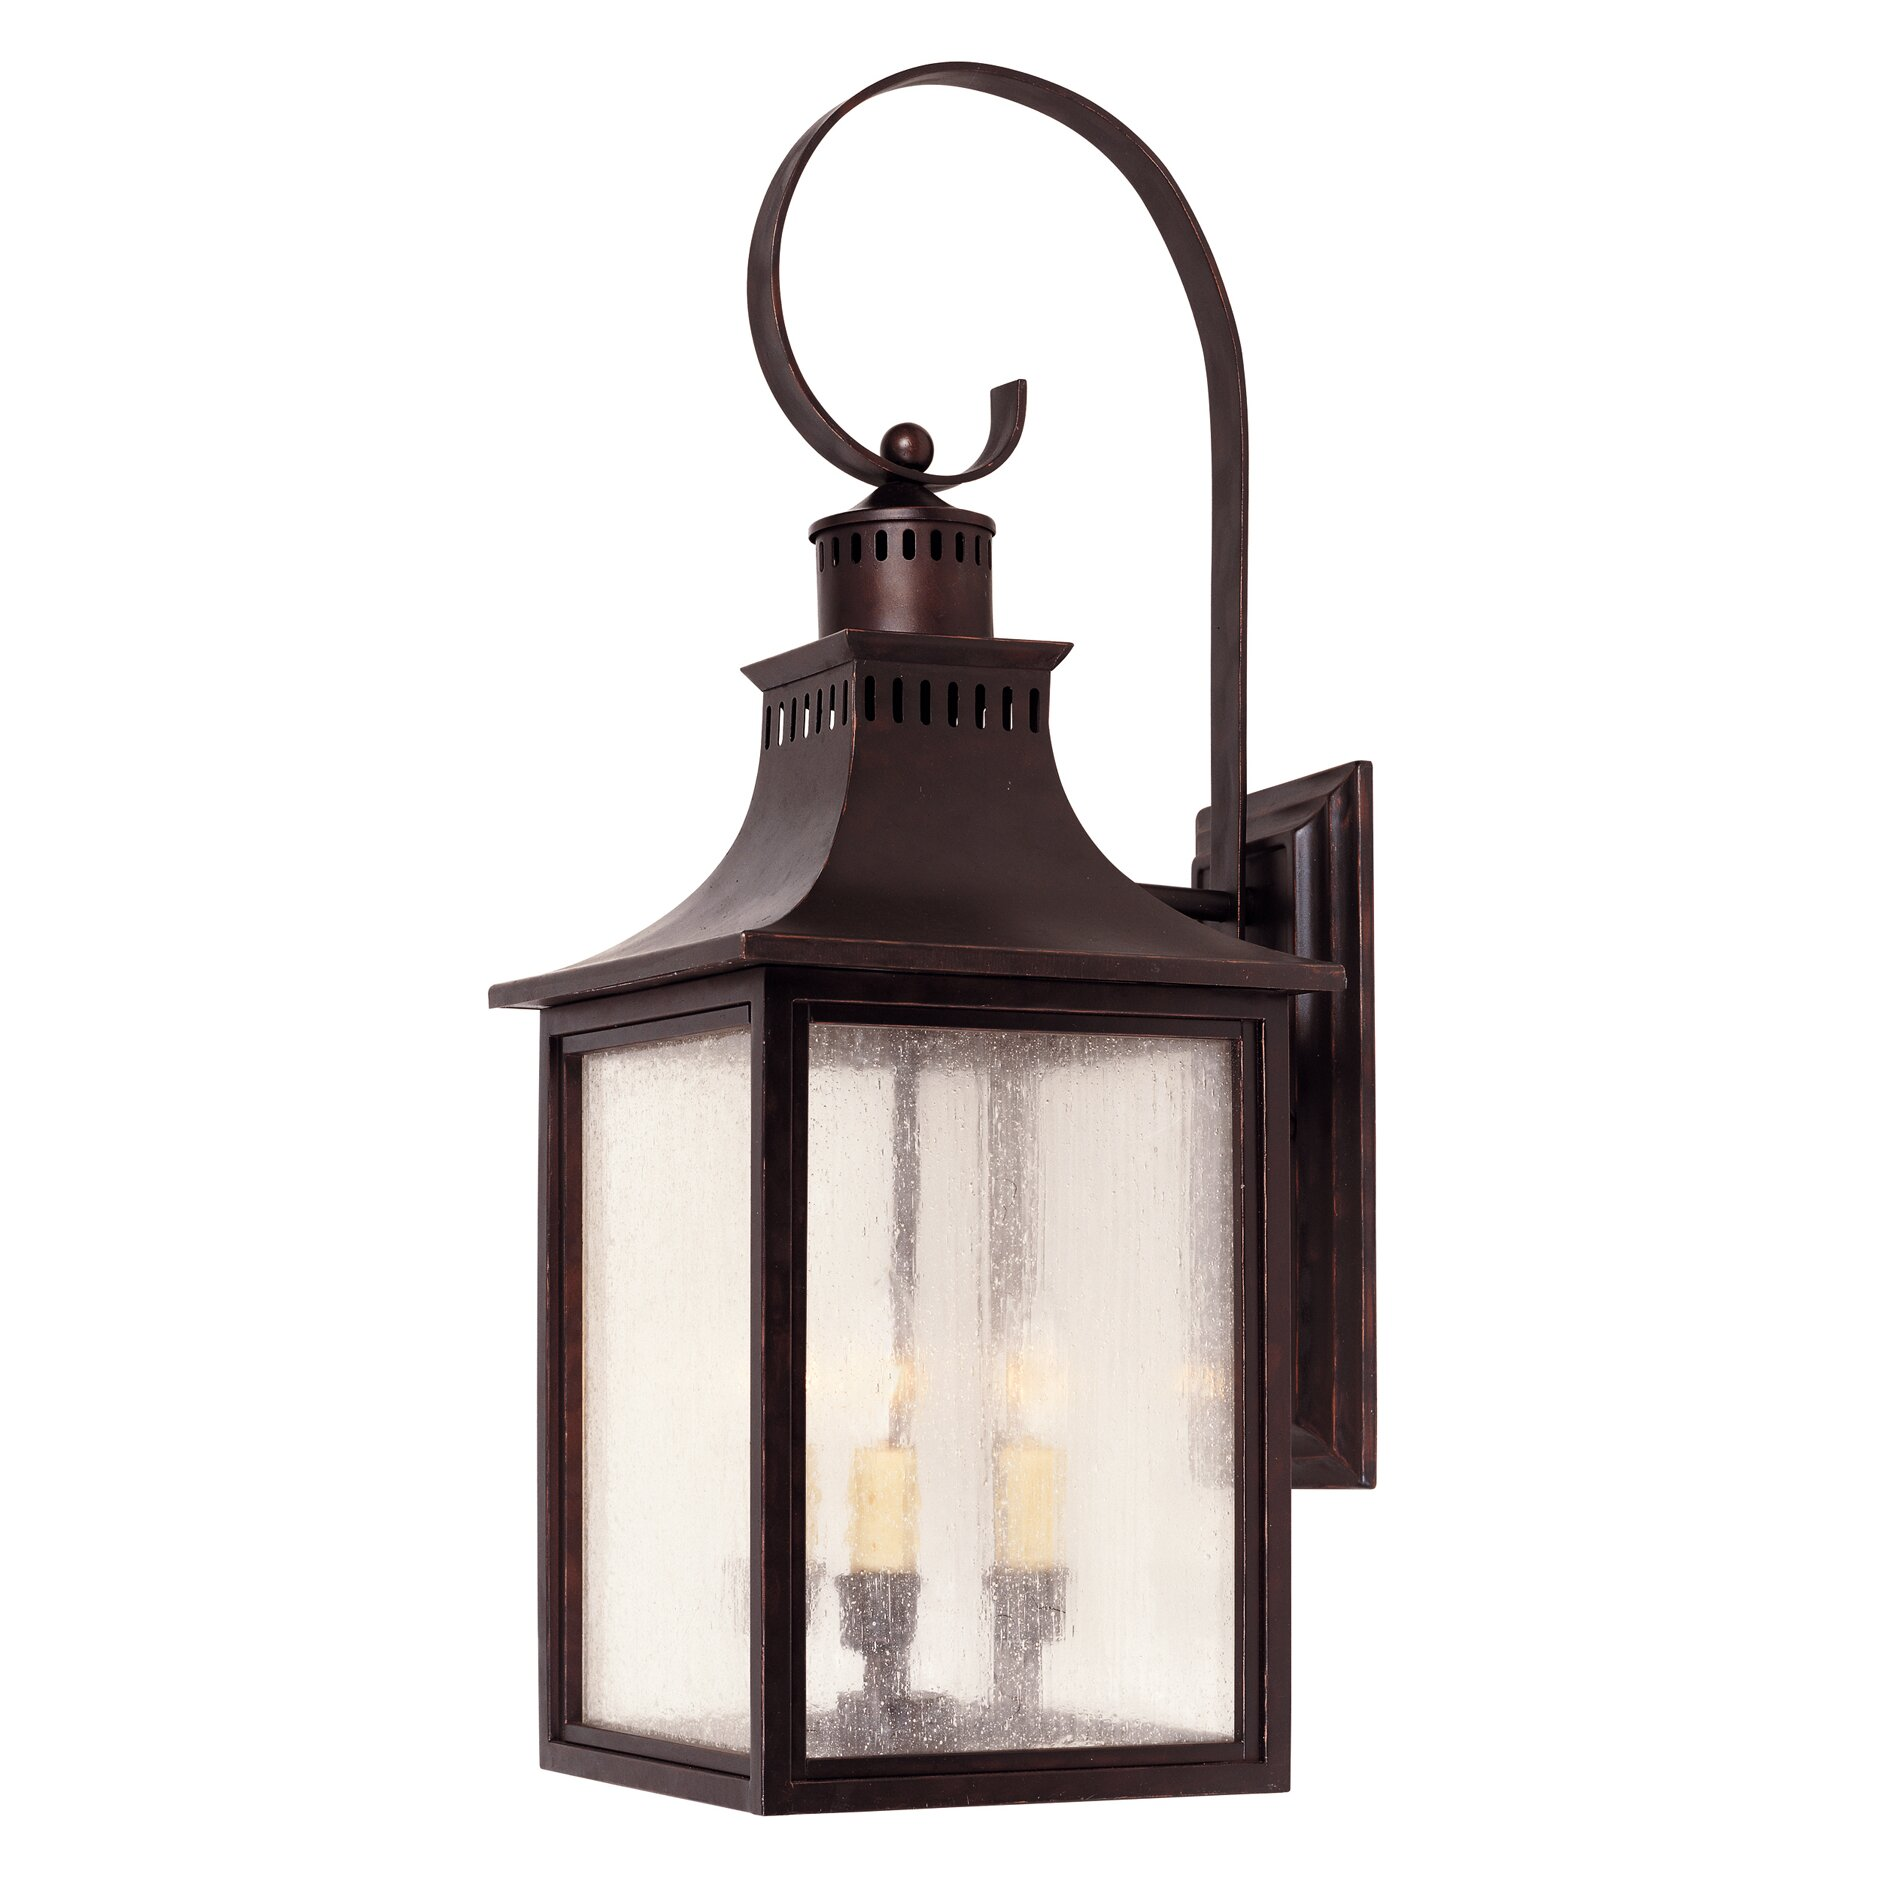 Wayfair External Wall Lights : Savoy House Monte Grande 3 Light Outdoor Wall Lantern & Reviews Wayfair